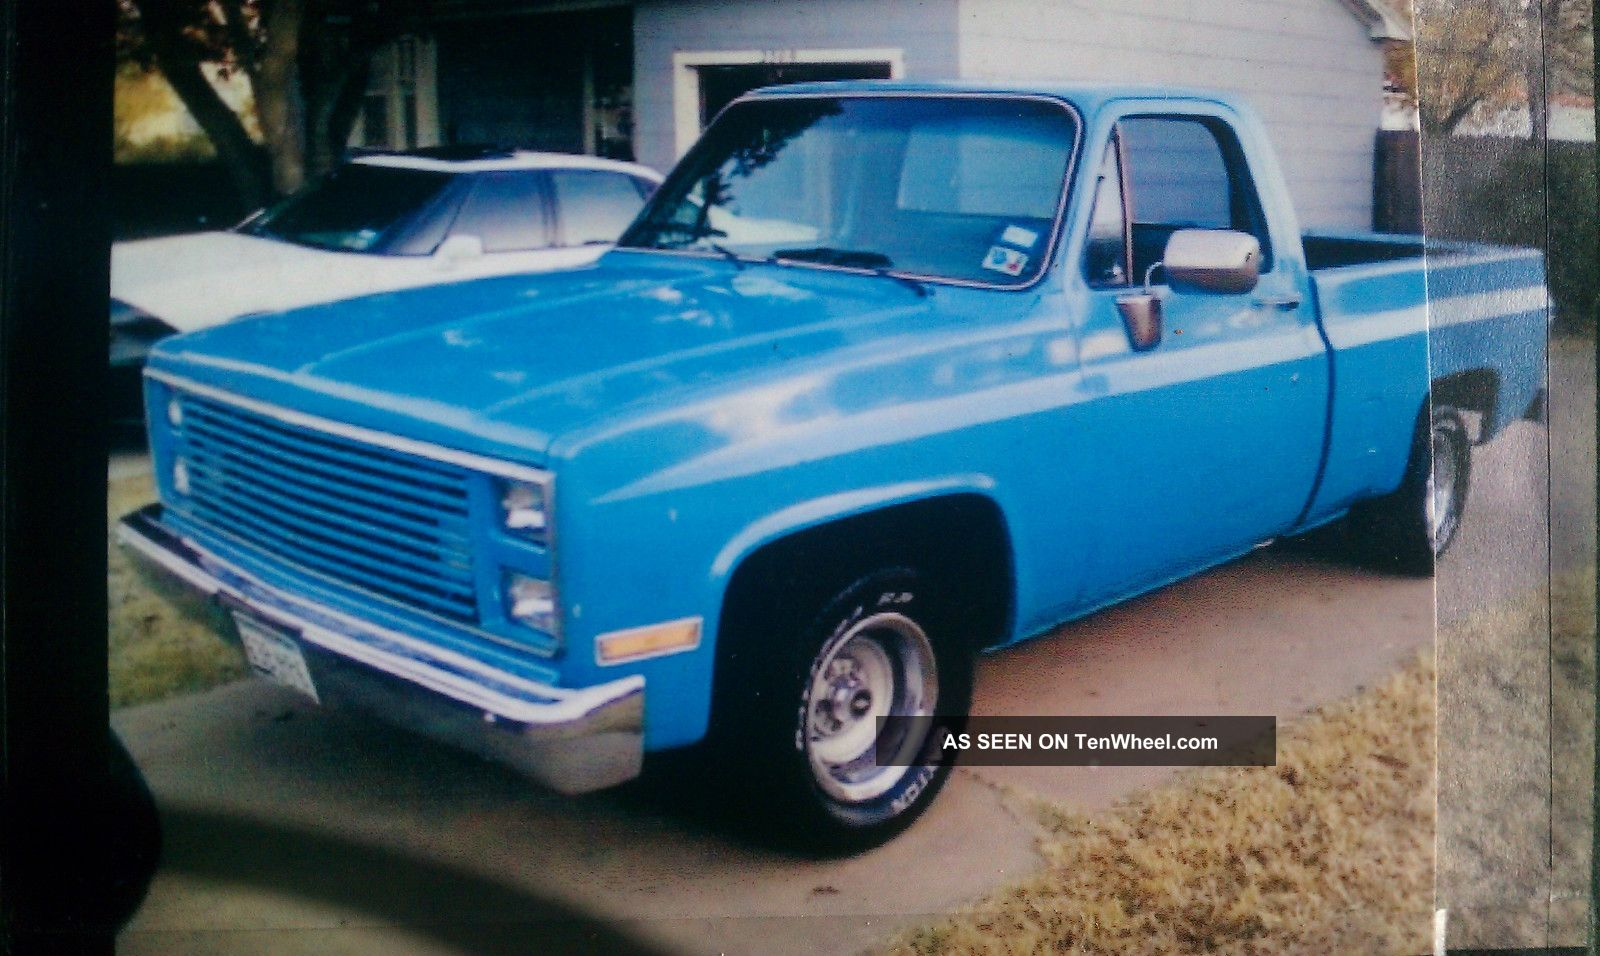 1985 Blue Chevy Shortwide,  High Performance Engine,  Good Body Condition C-10 photo